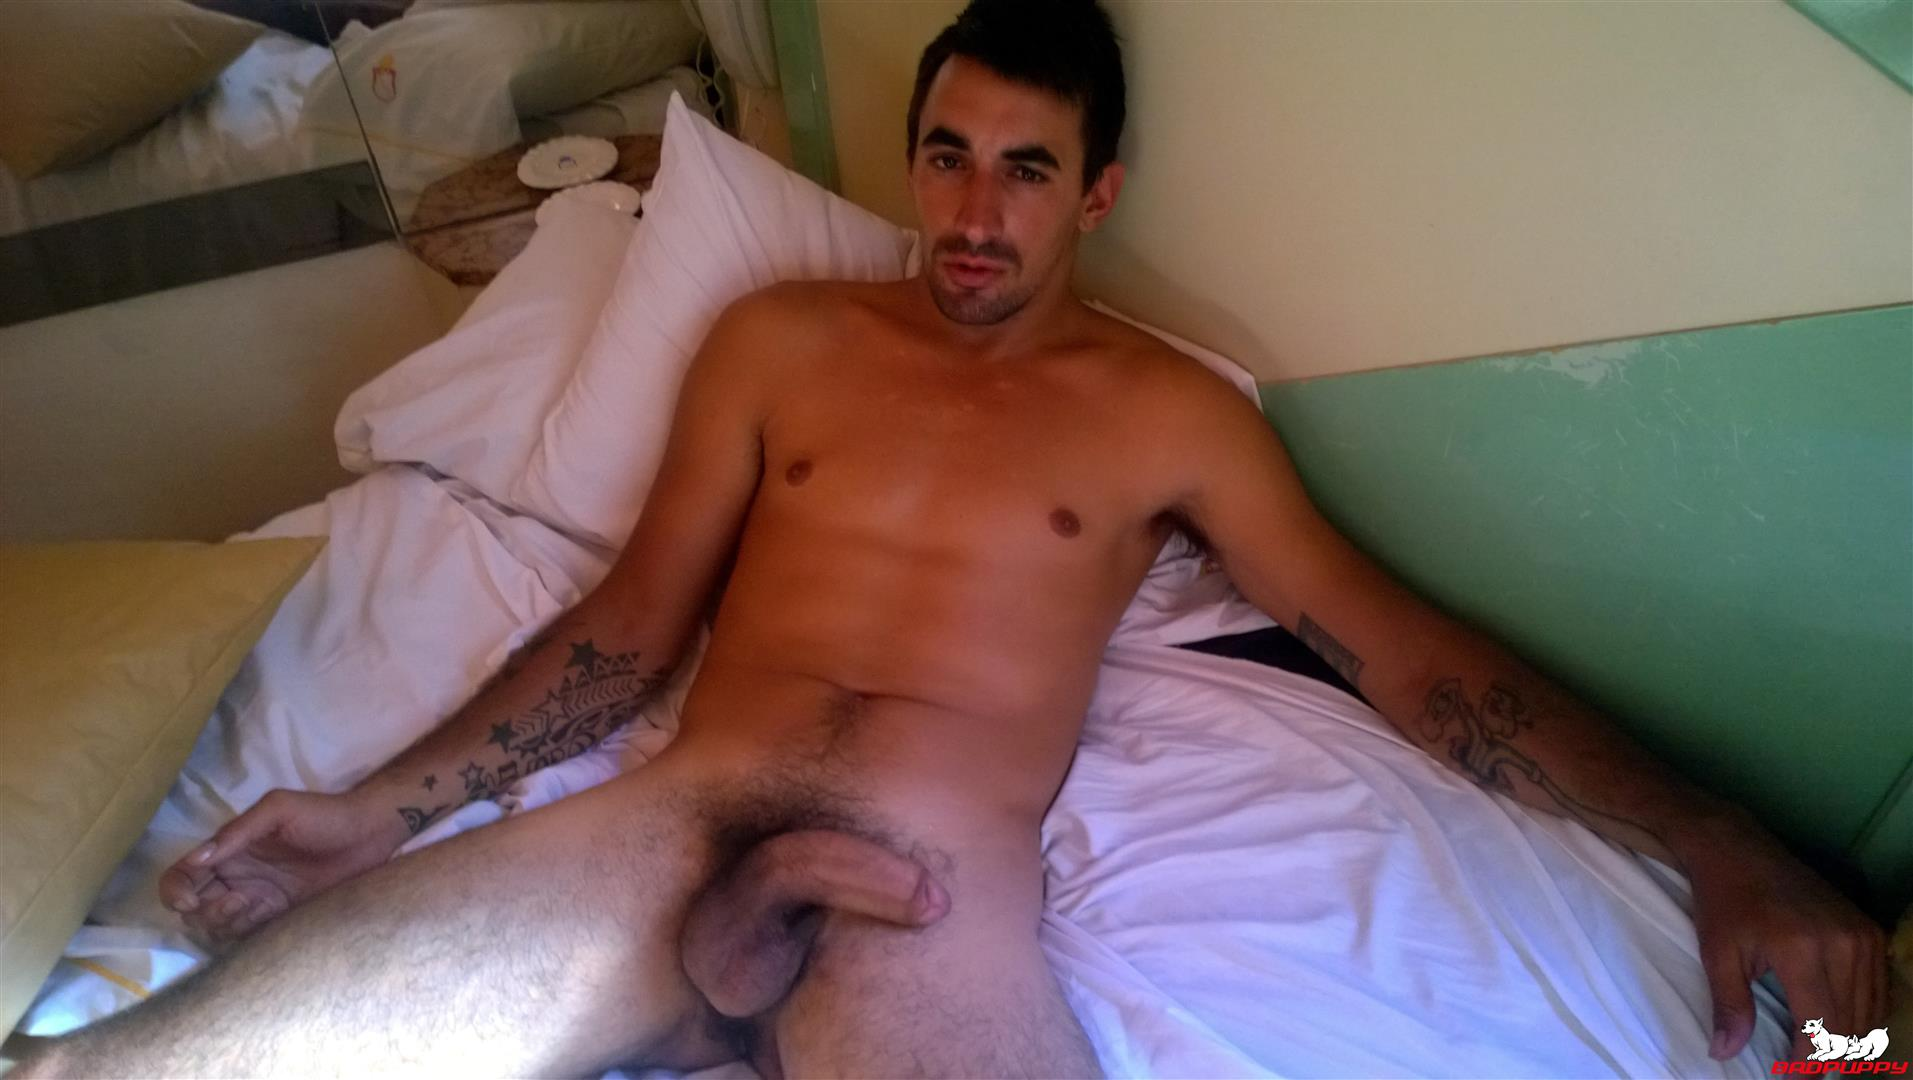 Badpuppy-Fabian-Flores-Argentinian-with-a-Big-Uncut-Cock-14 Argentinian Hunk With A Big Uncut Cock Auditions For Gay Porn